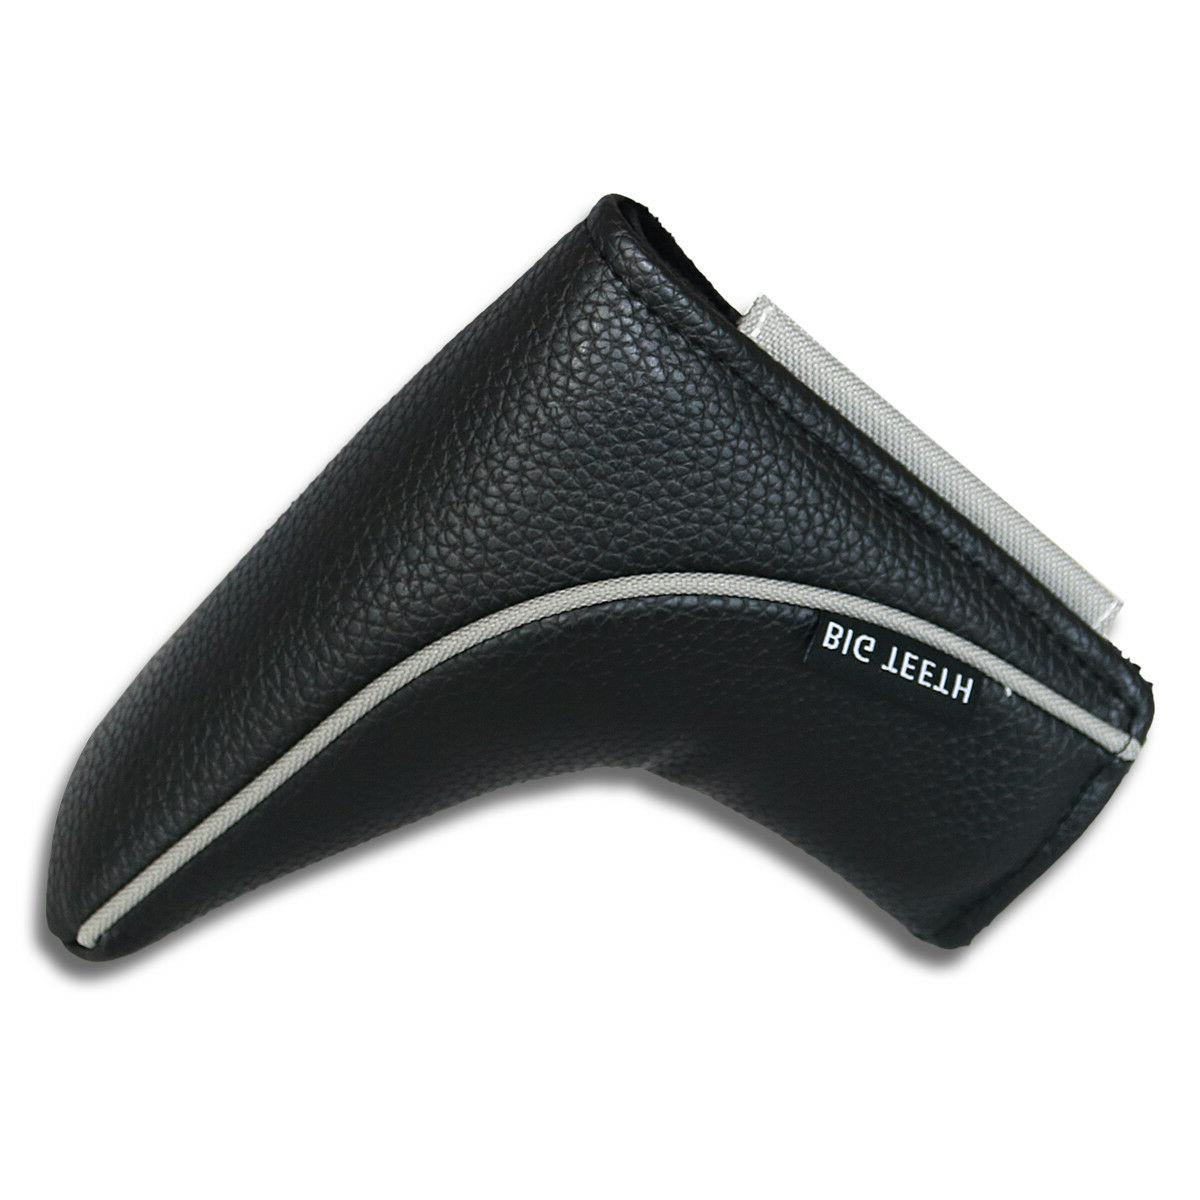 black magnetic golf putter headcover cover